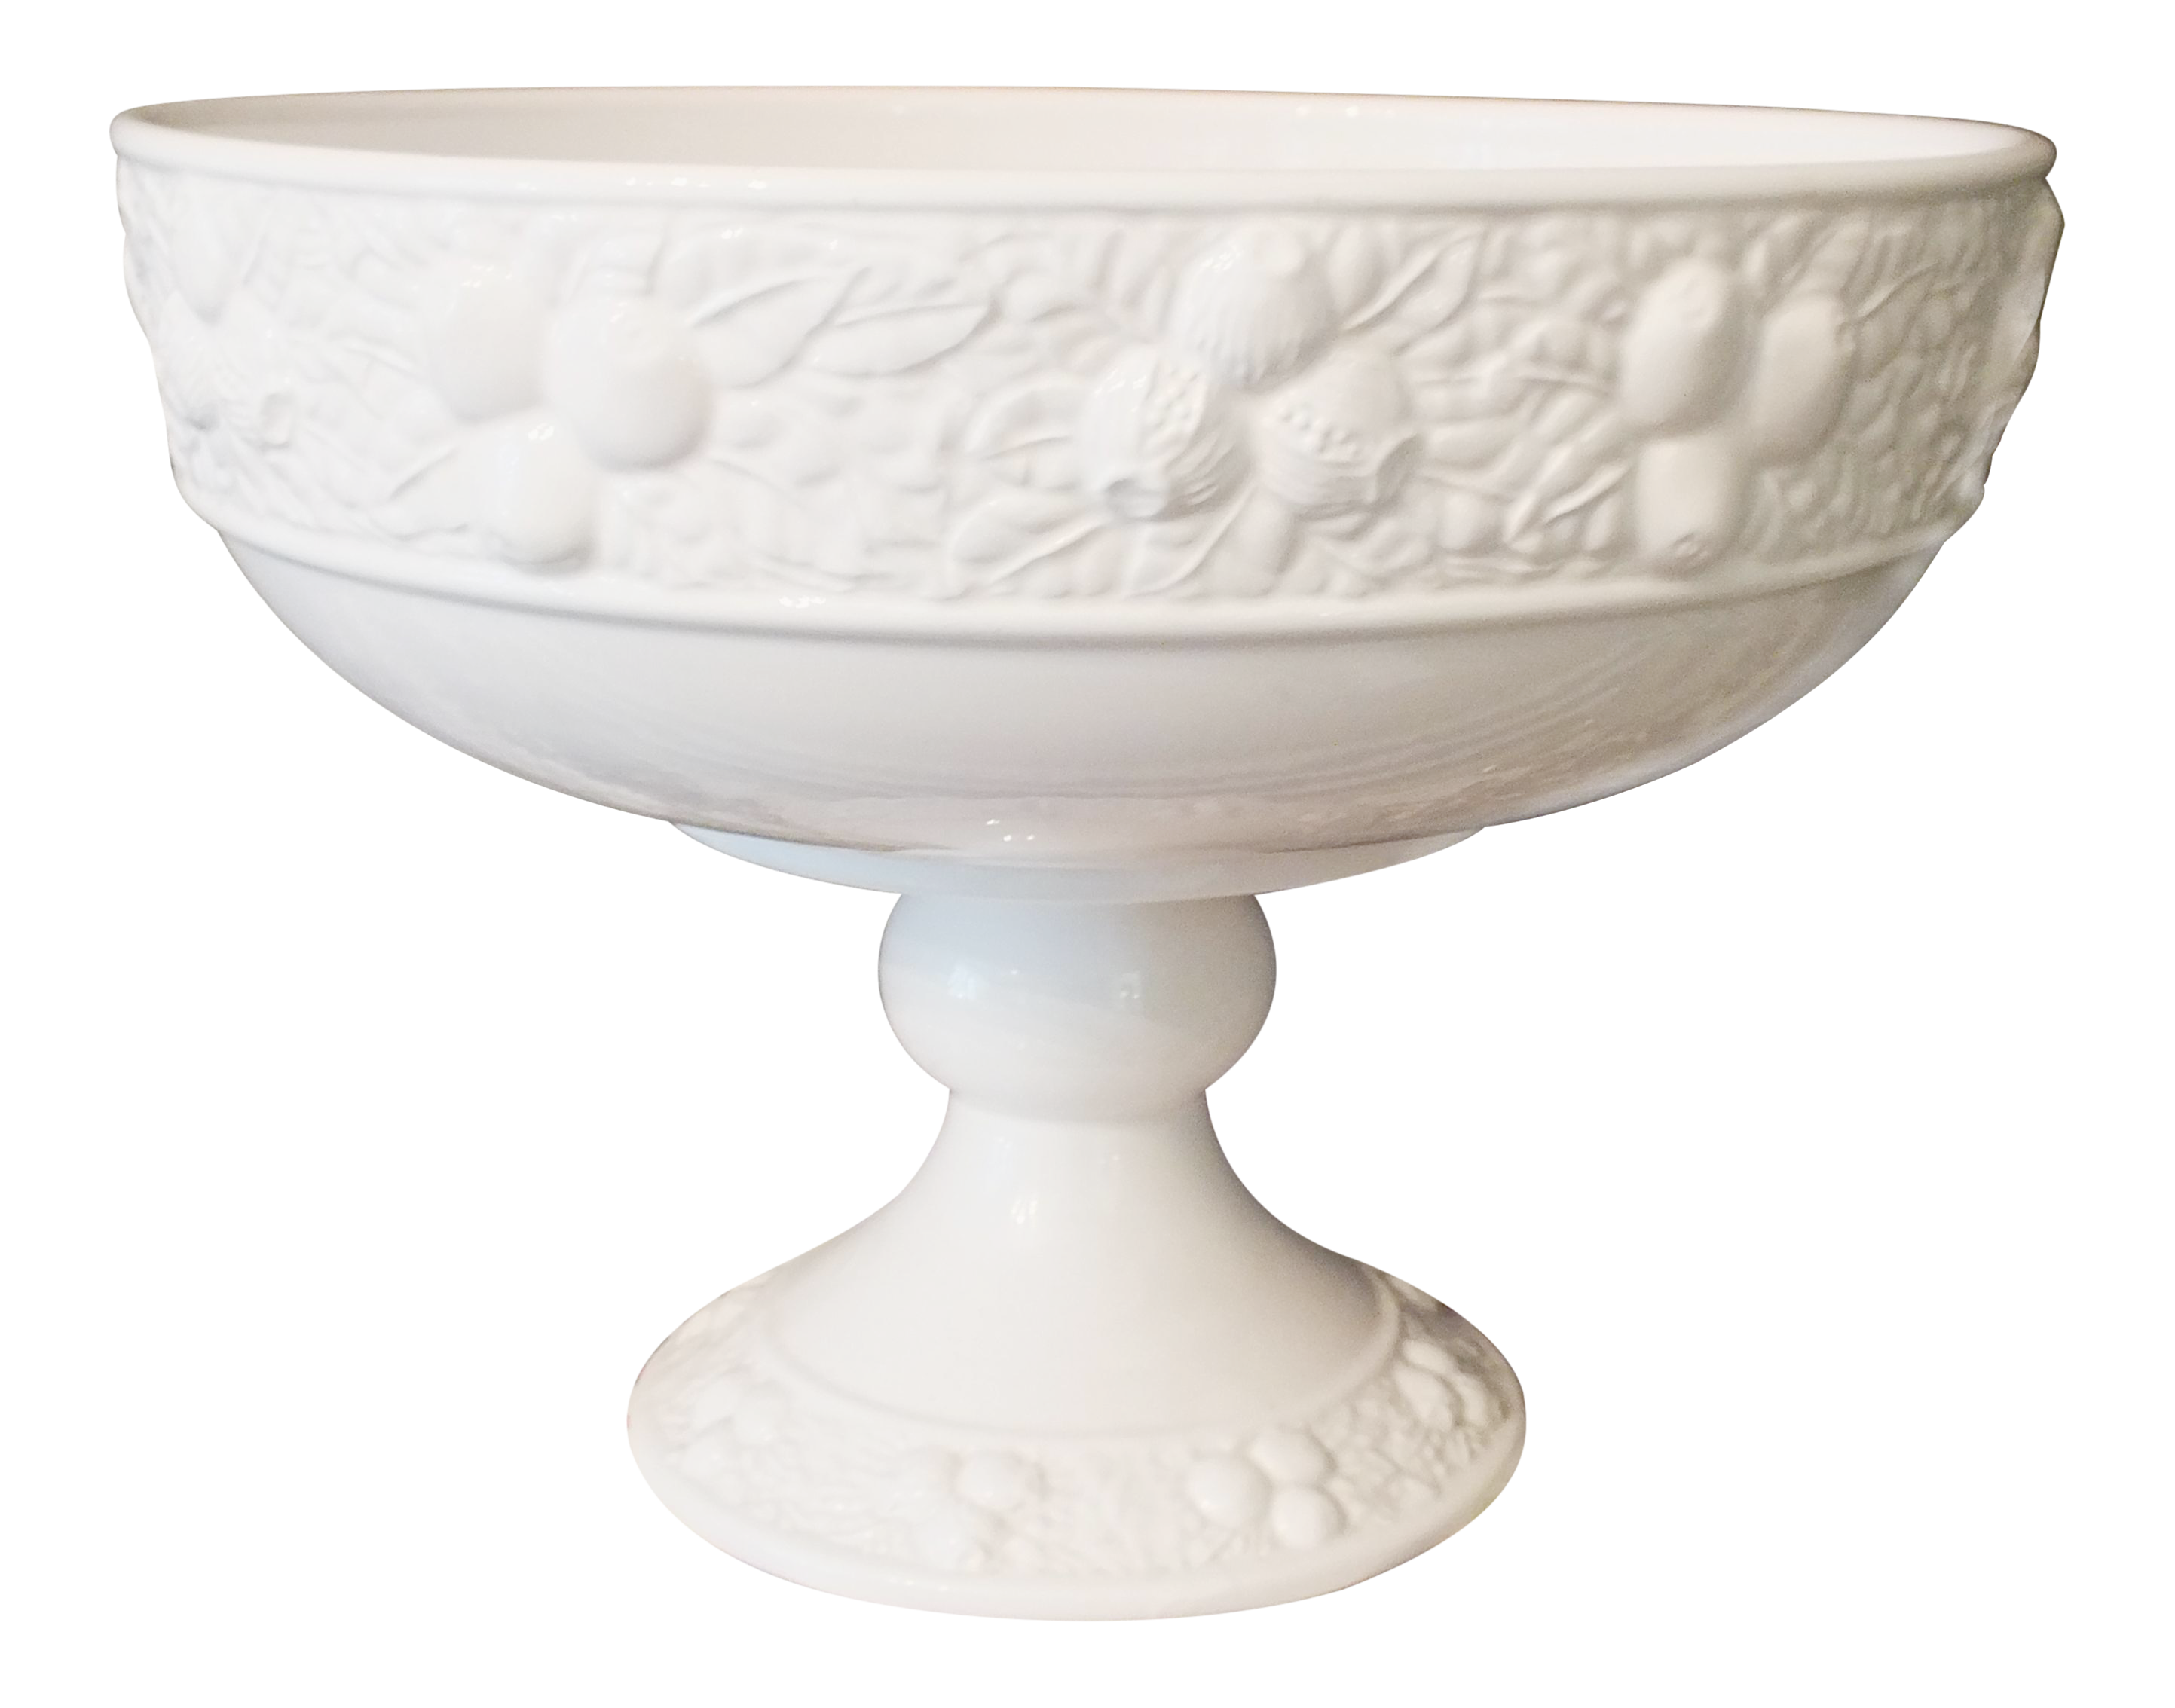 Excellent White Ceramic Large Footed Pedestal Fruit Bowl | Chairish OO15